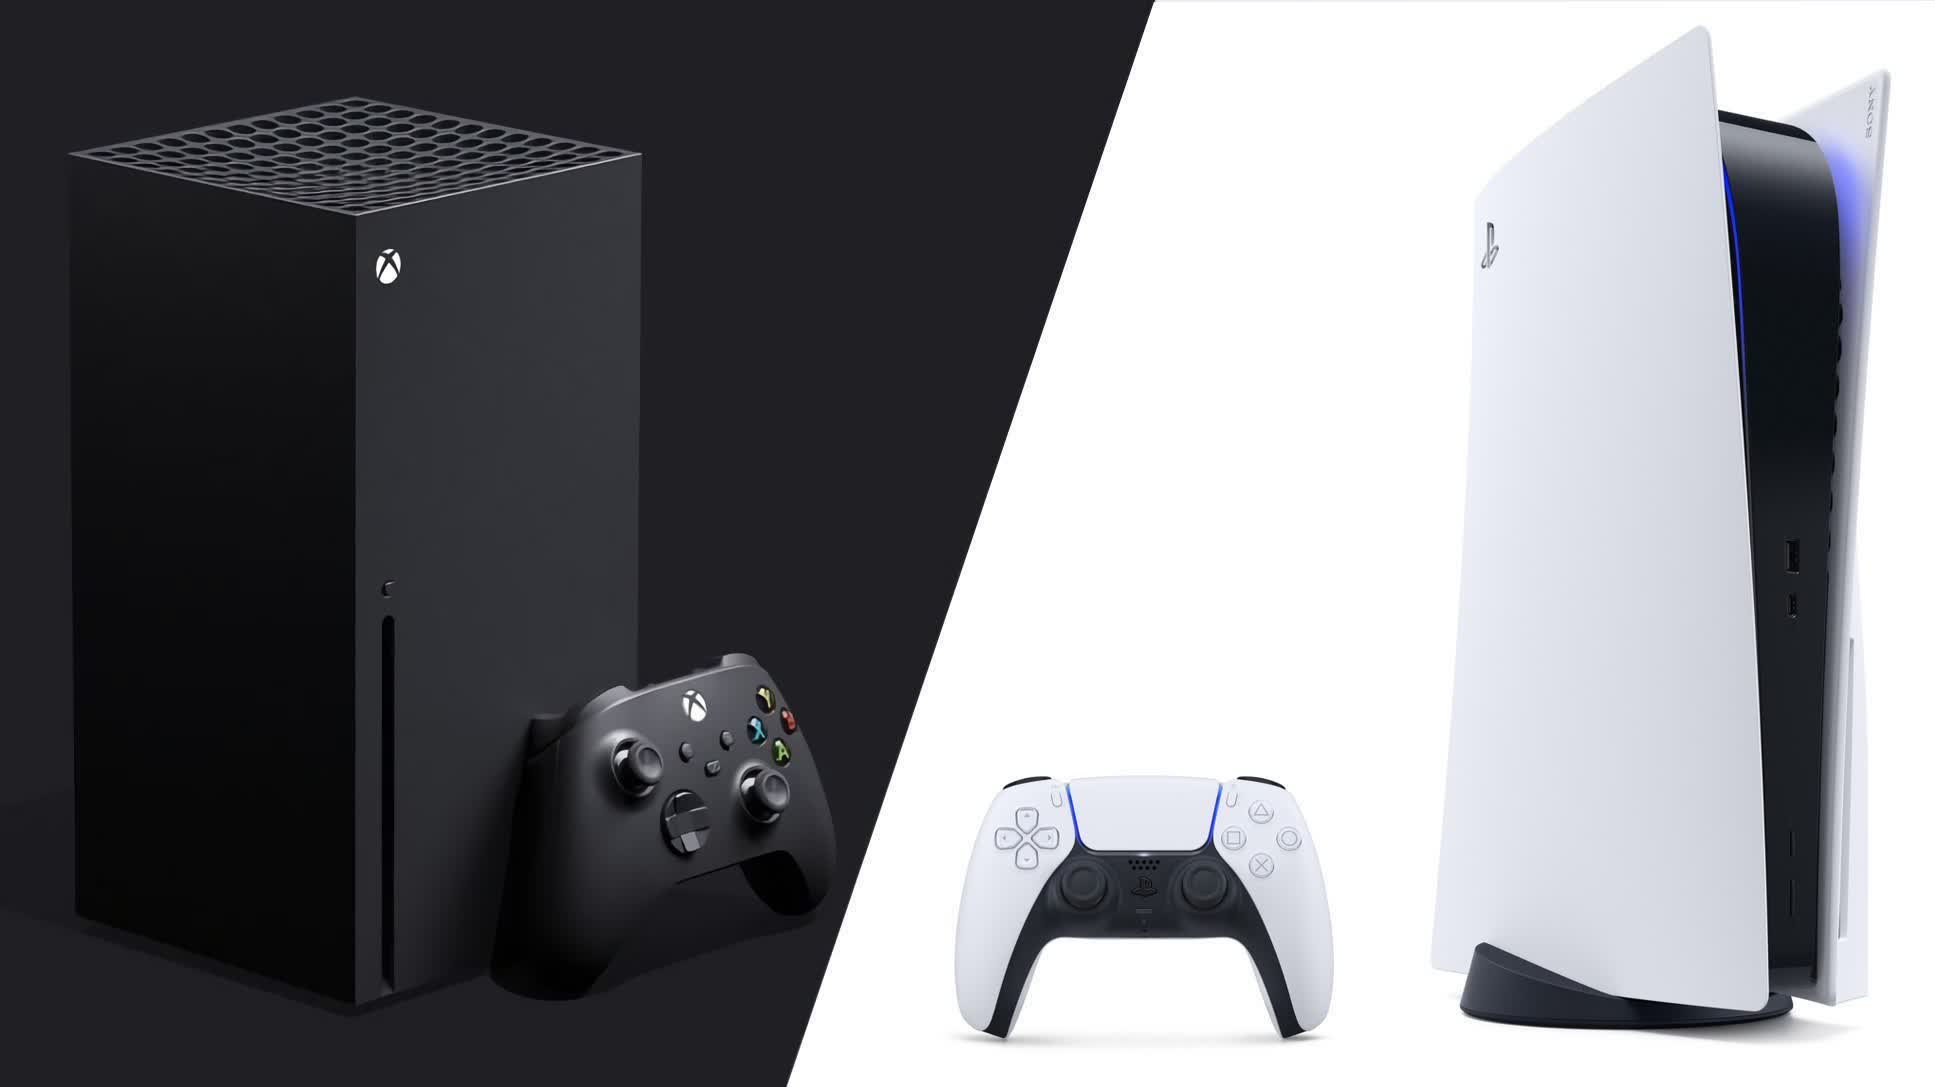 PS5 sold nearly twice as many units in 2020 as XBSX